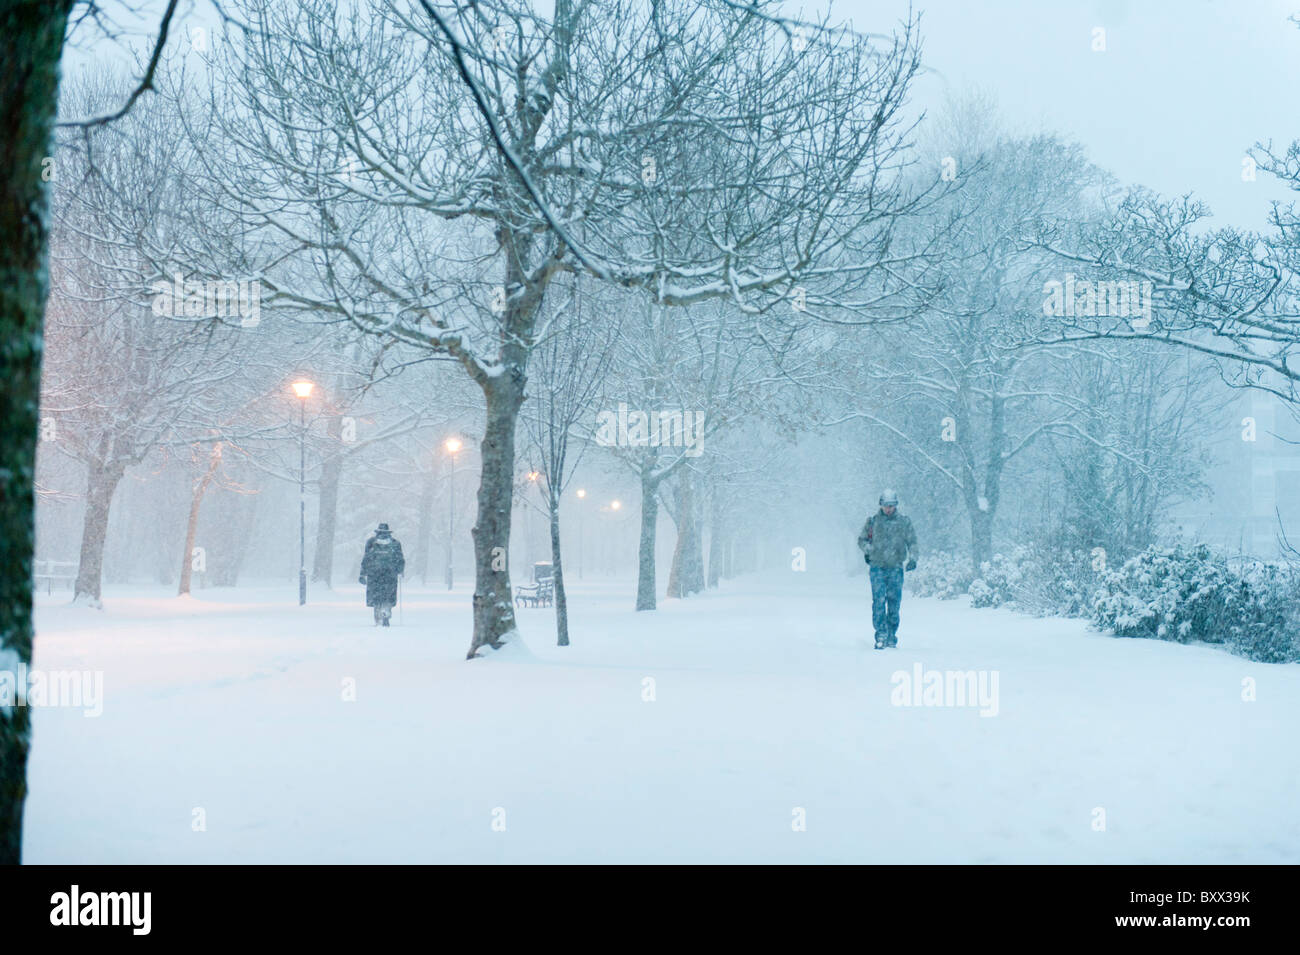 Early morning, people walking in the snow, Aberystwyth Wales UK December 2010 - Stock Image